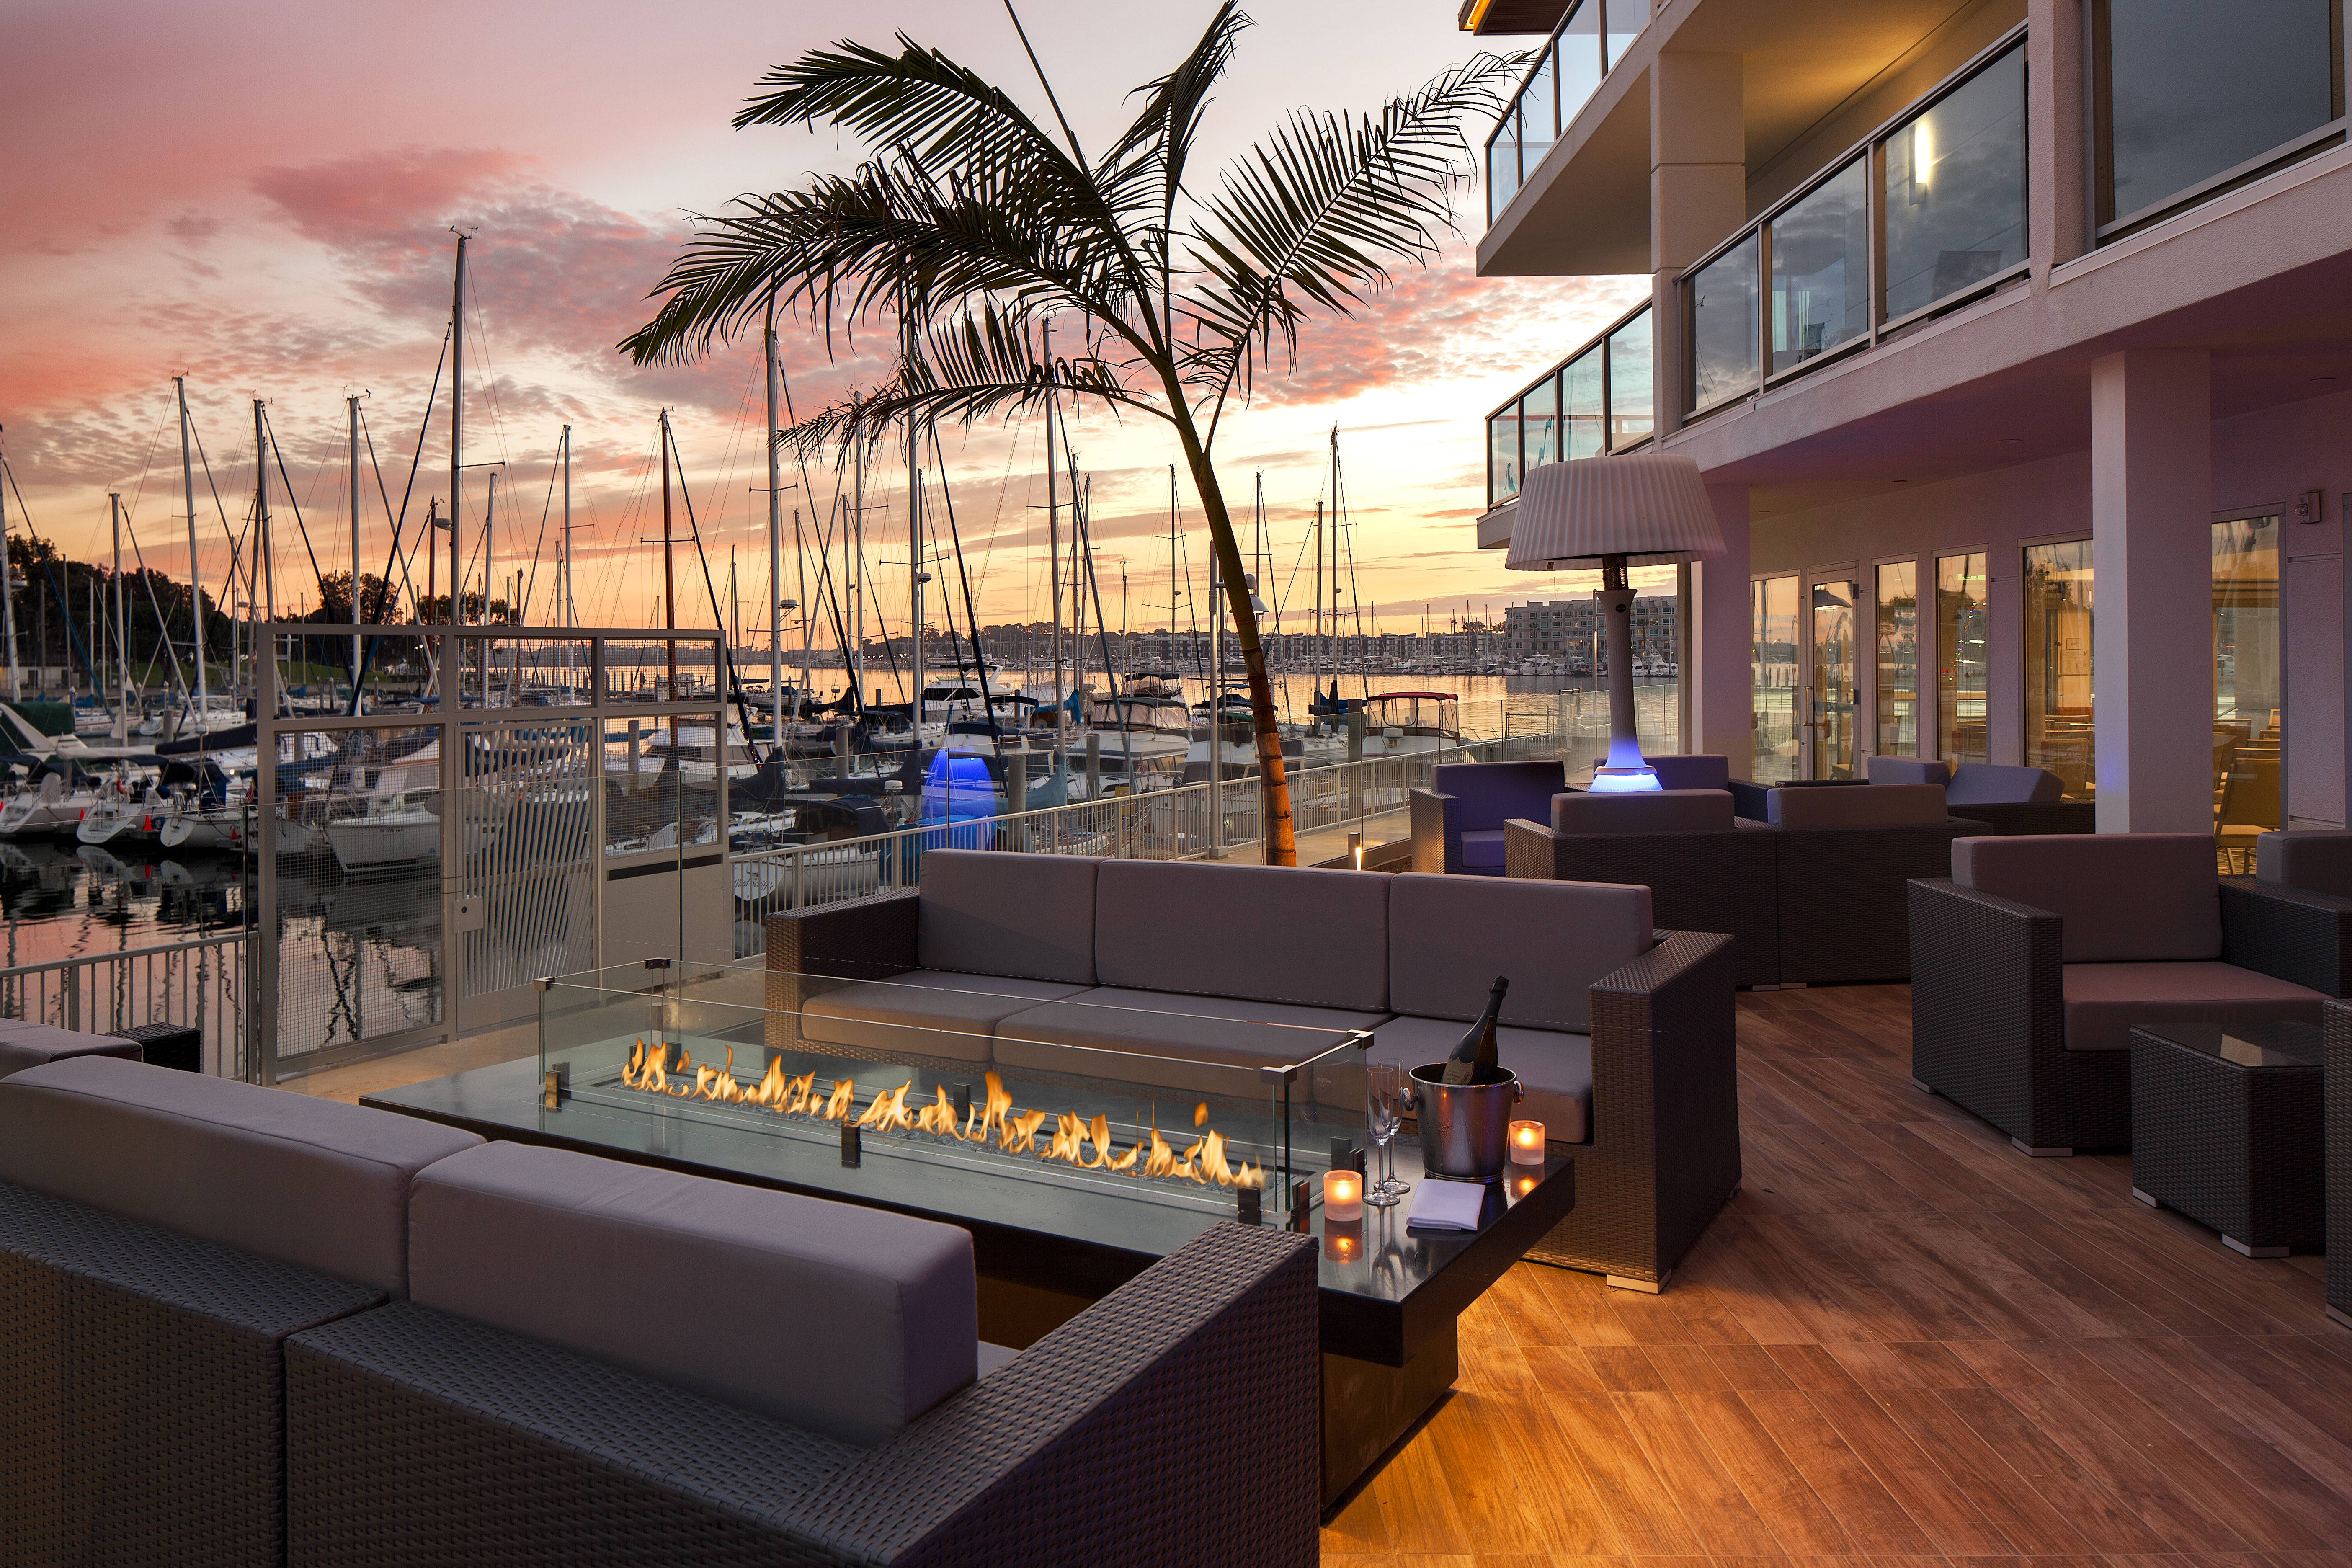 Salt marina del rey a beautiful eatery by the sea for Marina del rey living